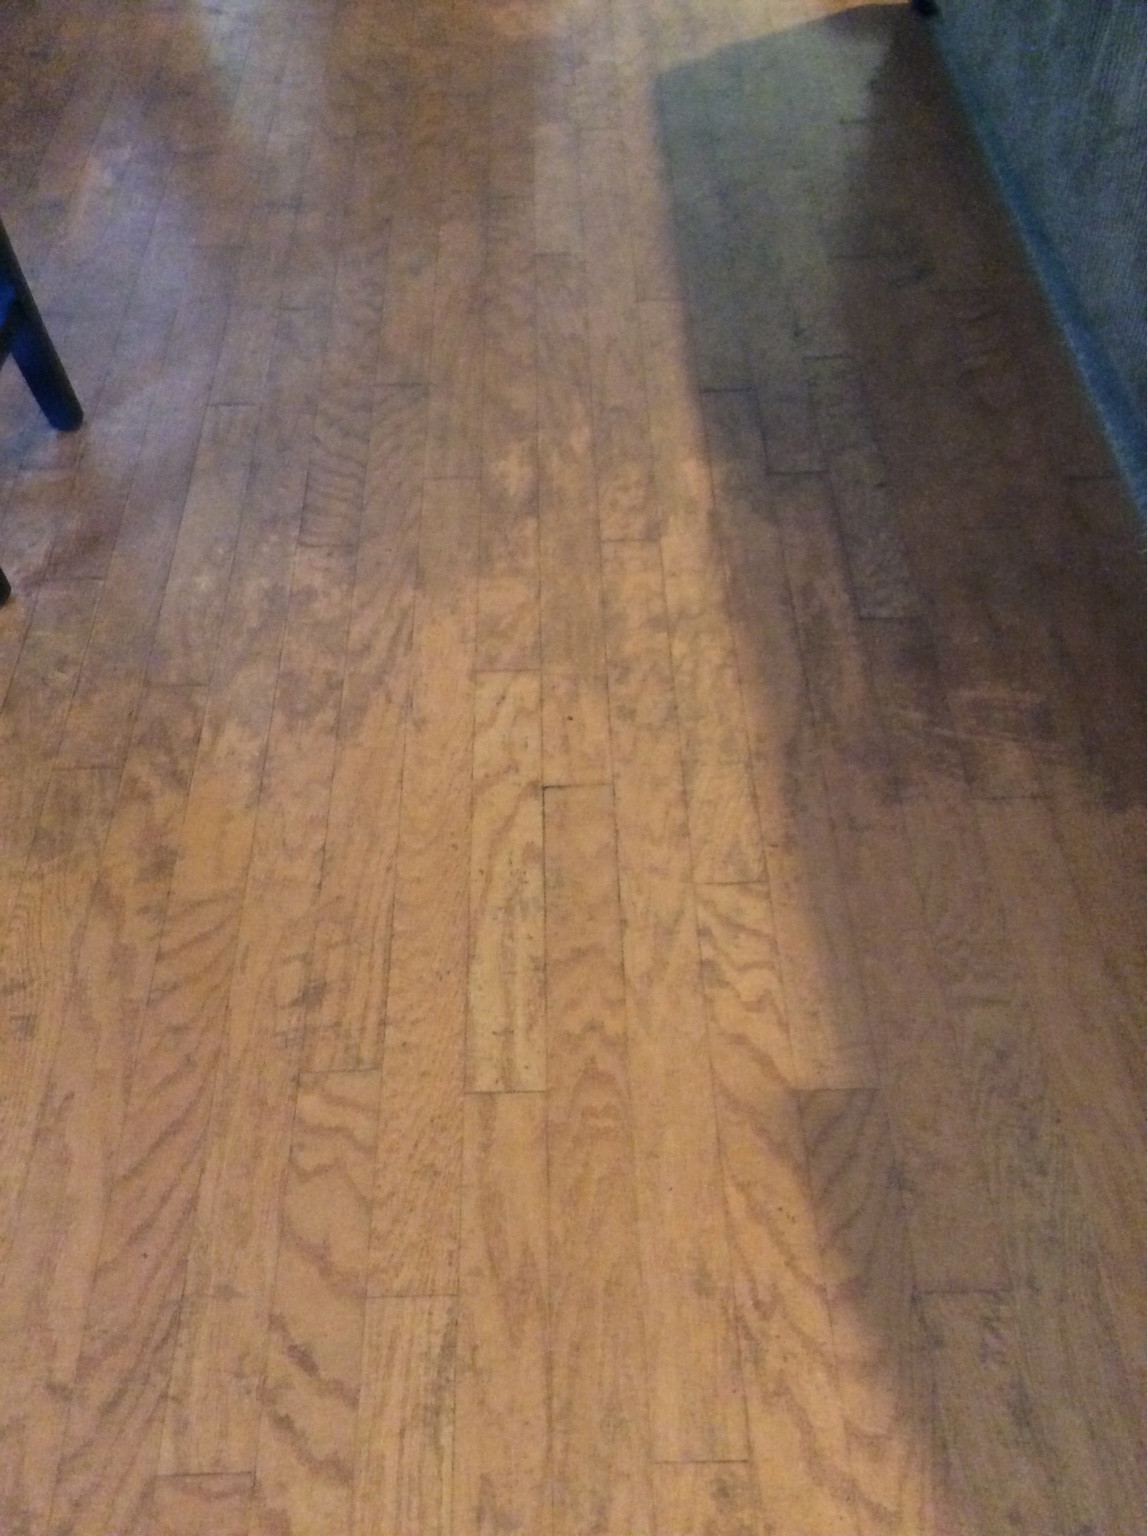 Engineered Hardwood Flooring Phoenix Of Hardwood Floor Cleaning Help Truckmount forums 1 Carpet Pertaining to How Would You Guys Clean This Wood Floors